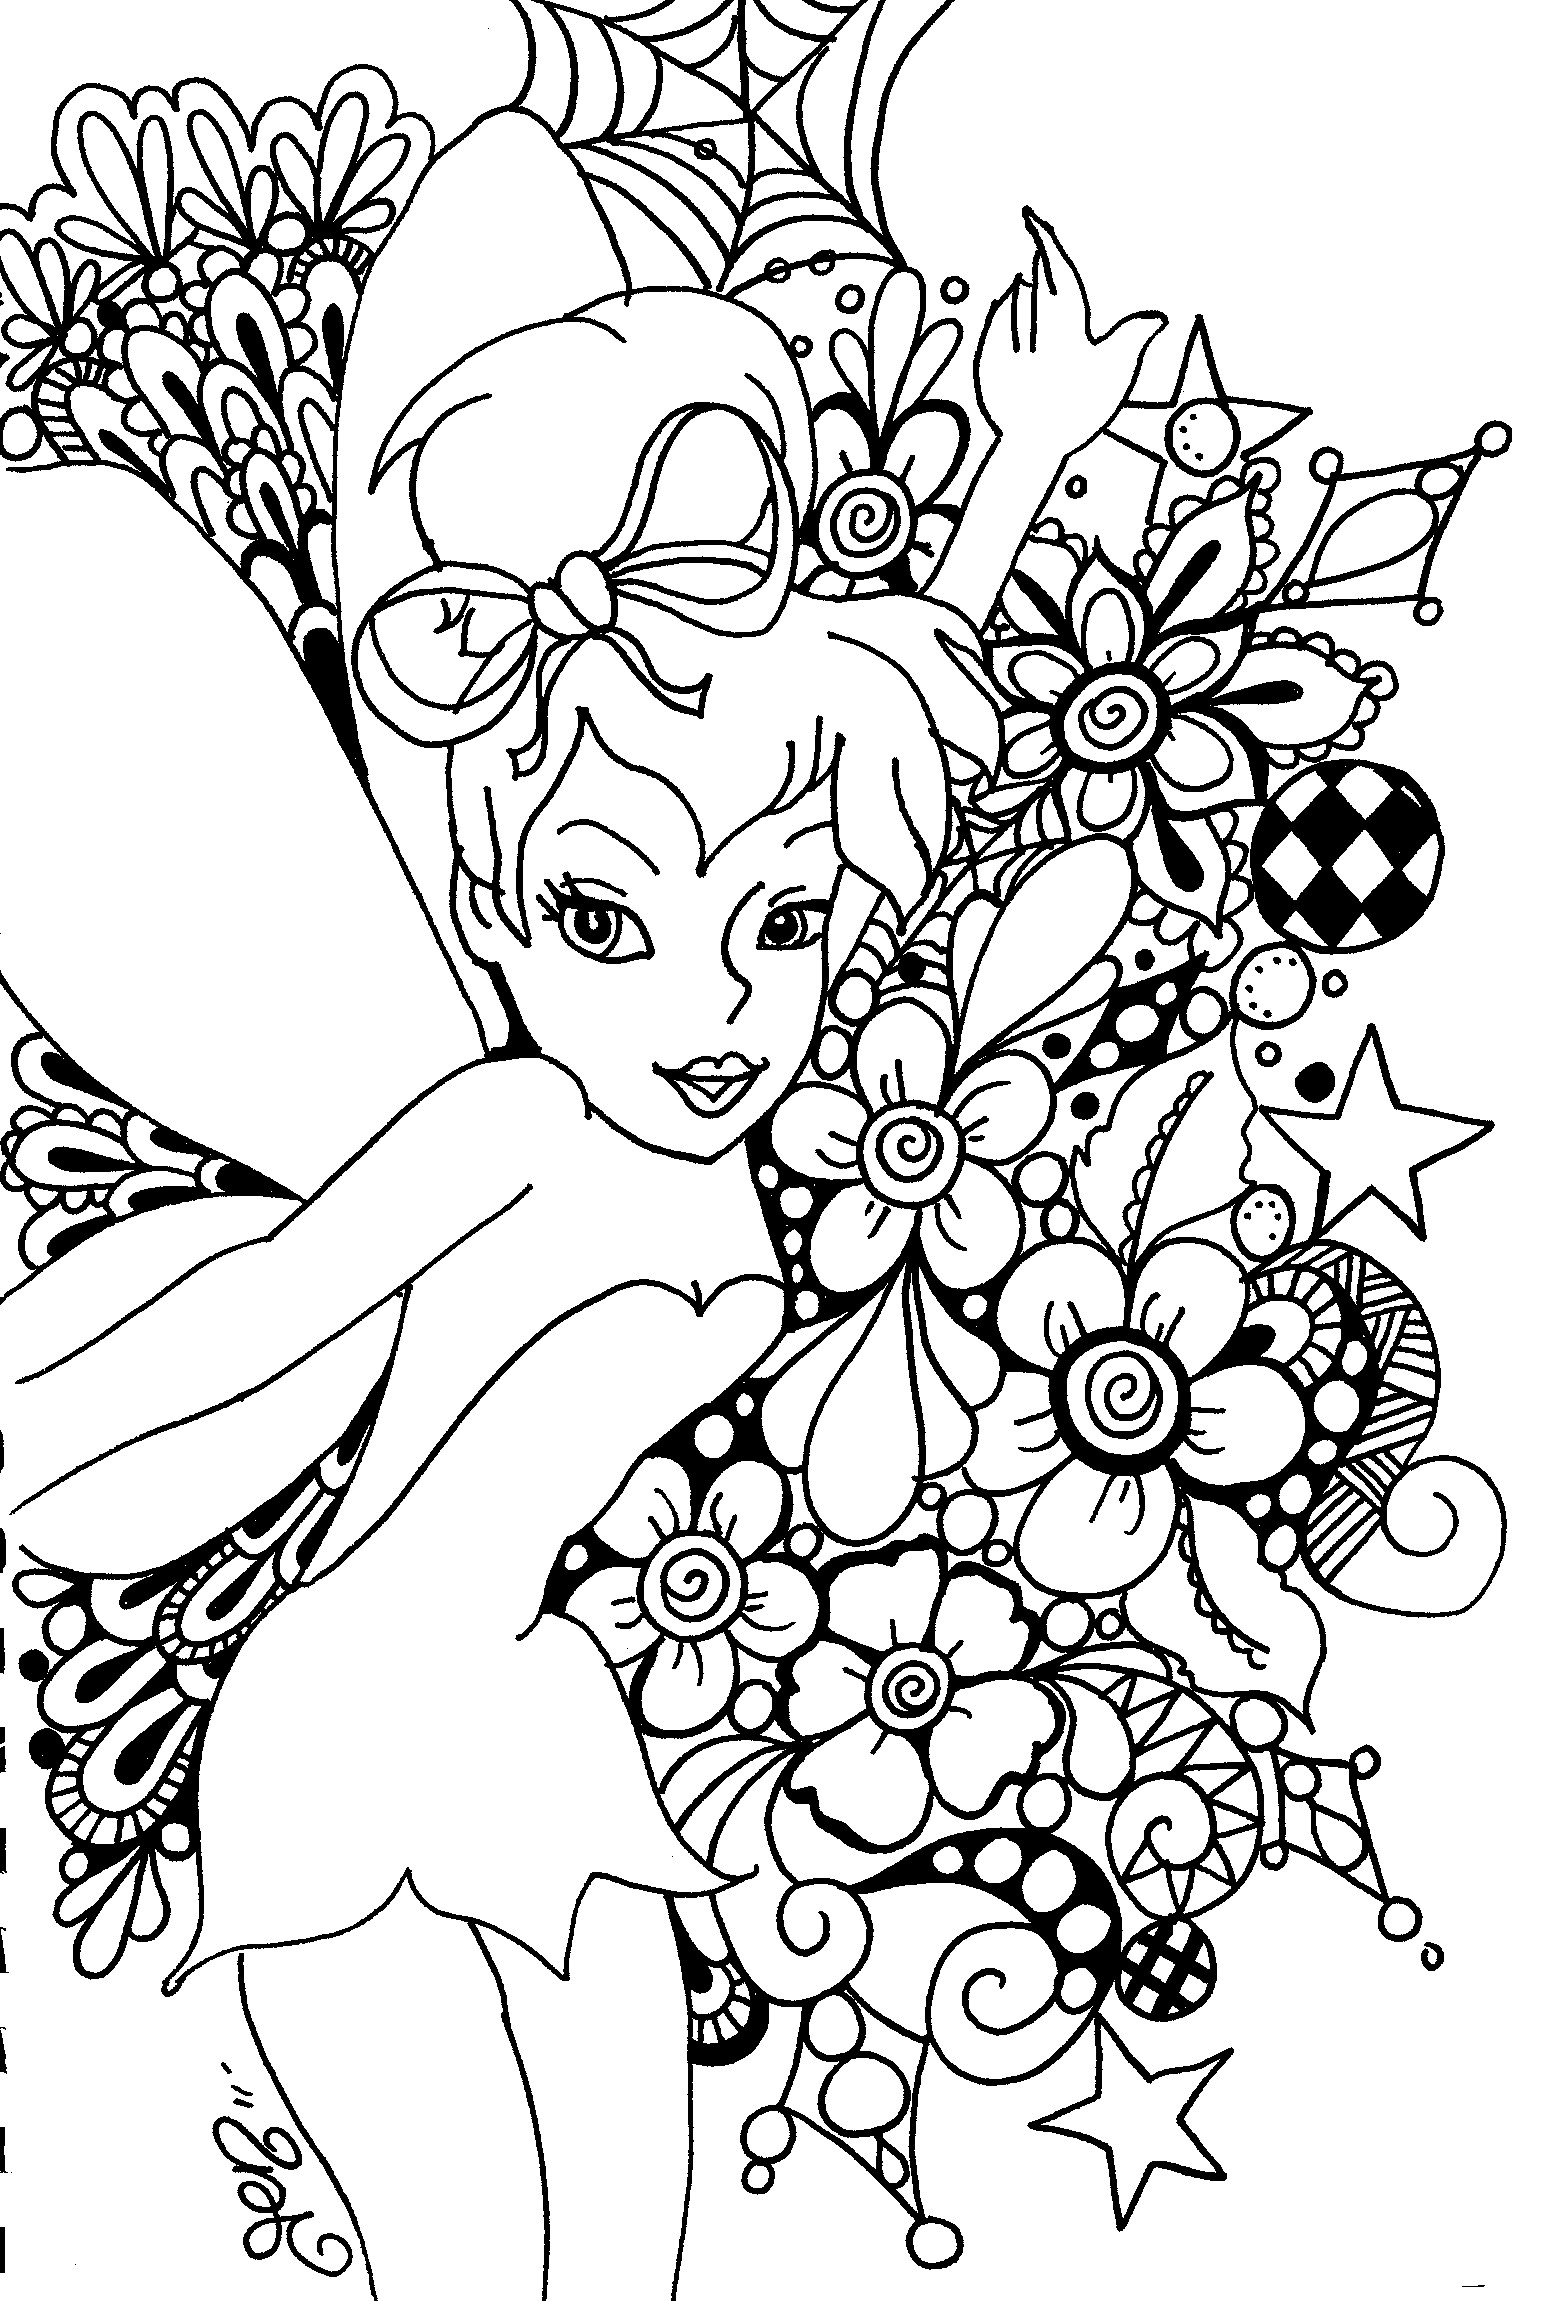 tinkerbell coloring pages 7 - Coloring Pages Tinkerbell